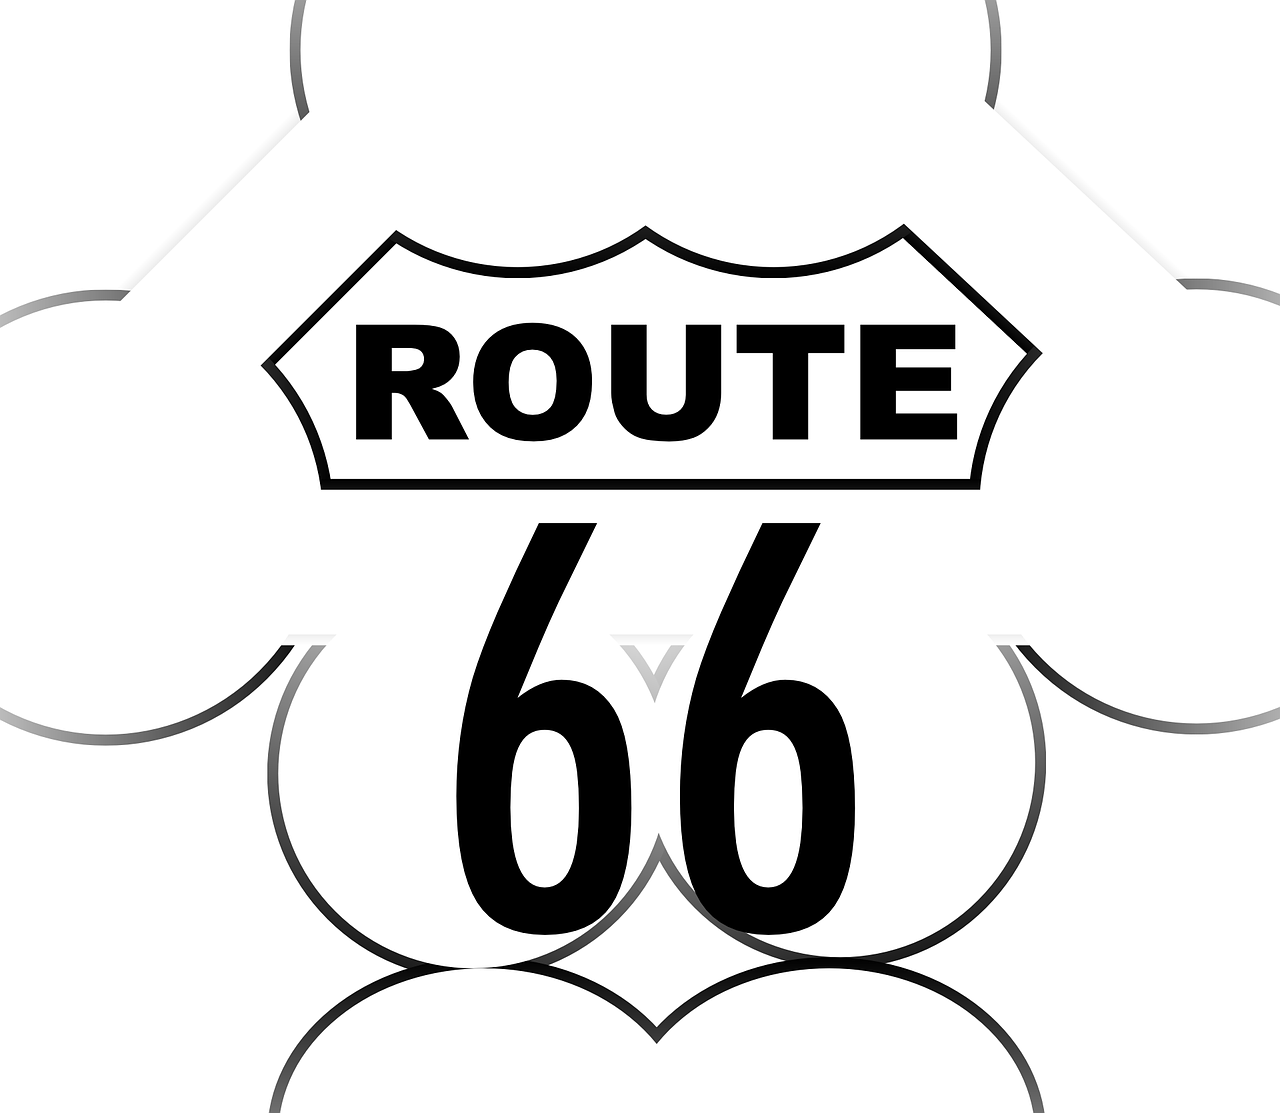 route 66 highway free photo